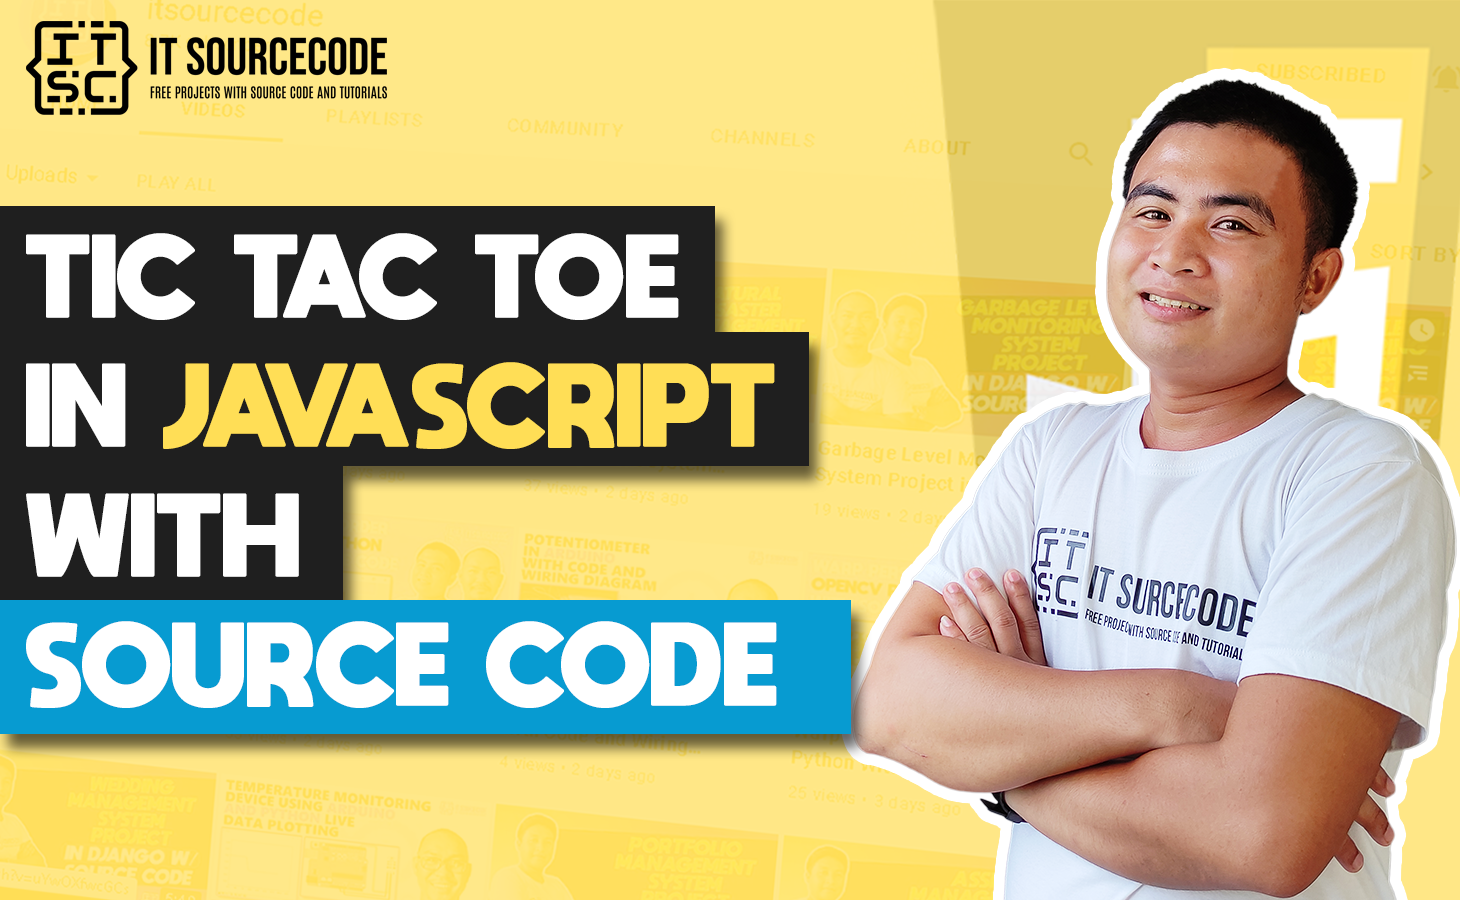 Tic Tac Toe In Javascript With Source Code